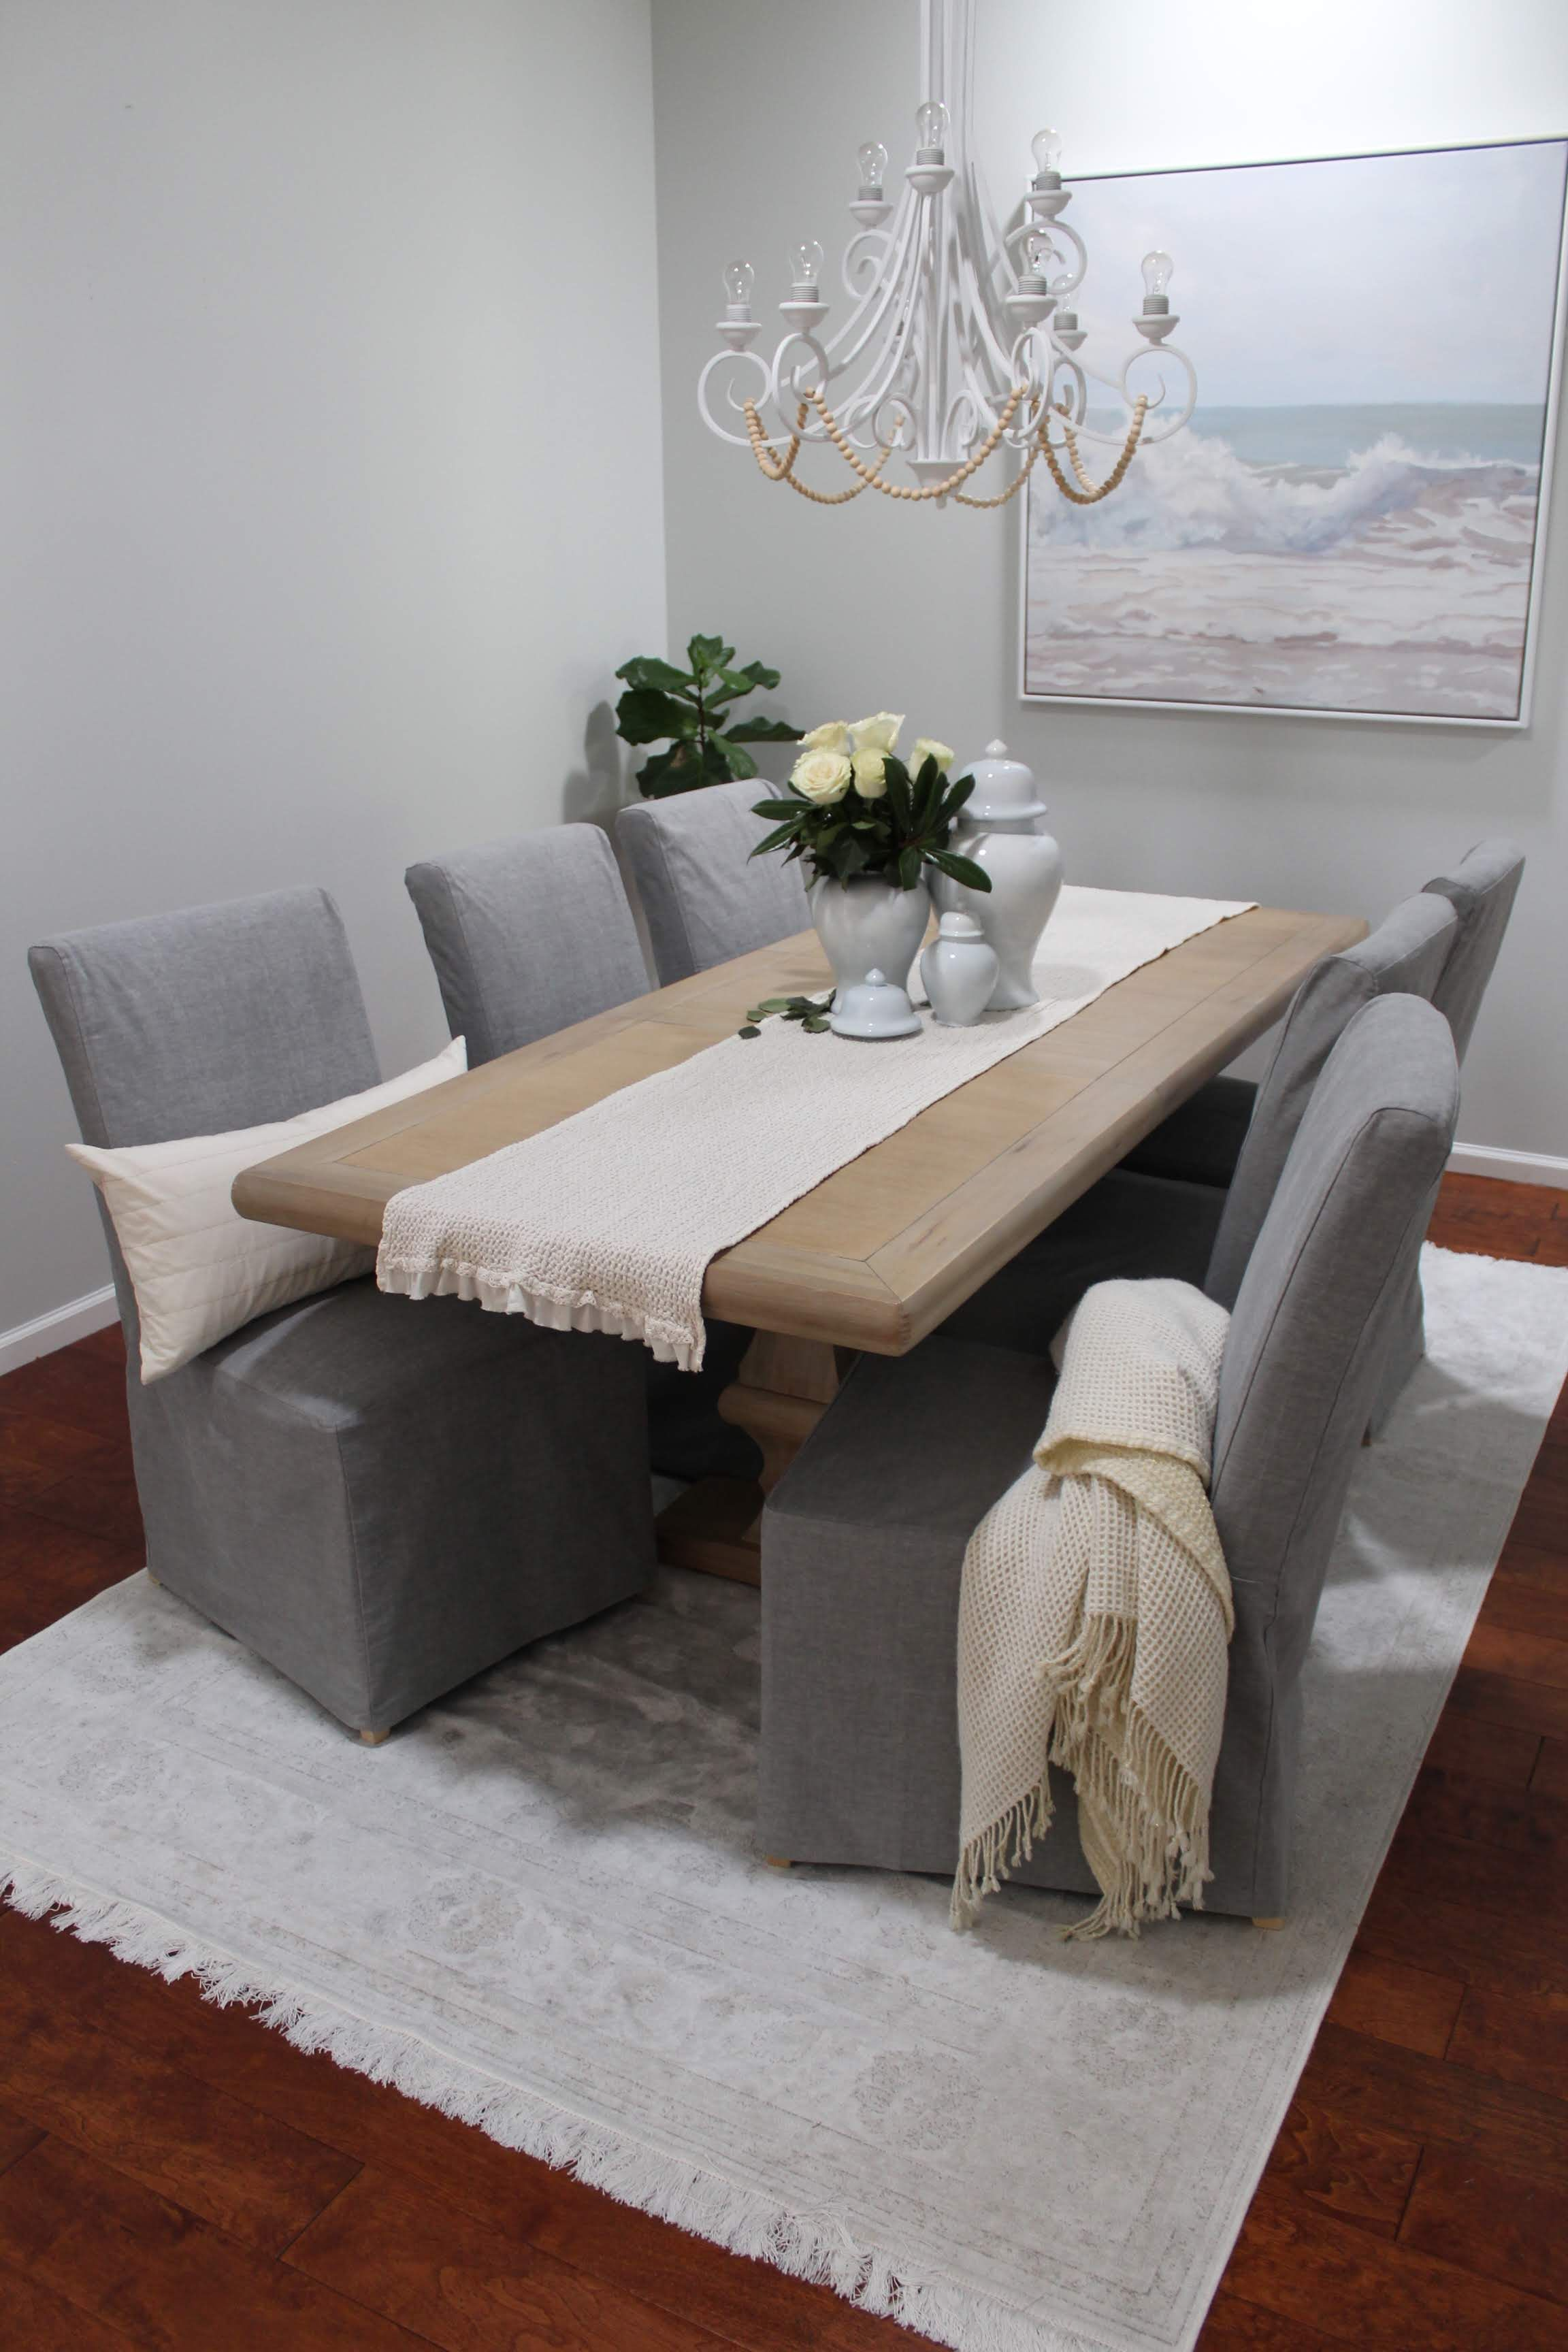 Ikea Henriksdal Dining Chair In Madison Ash Dining Chair